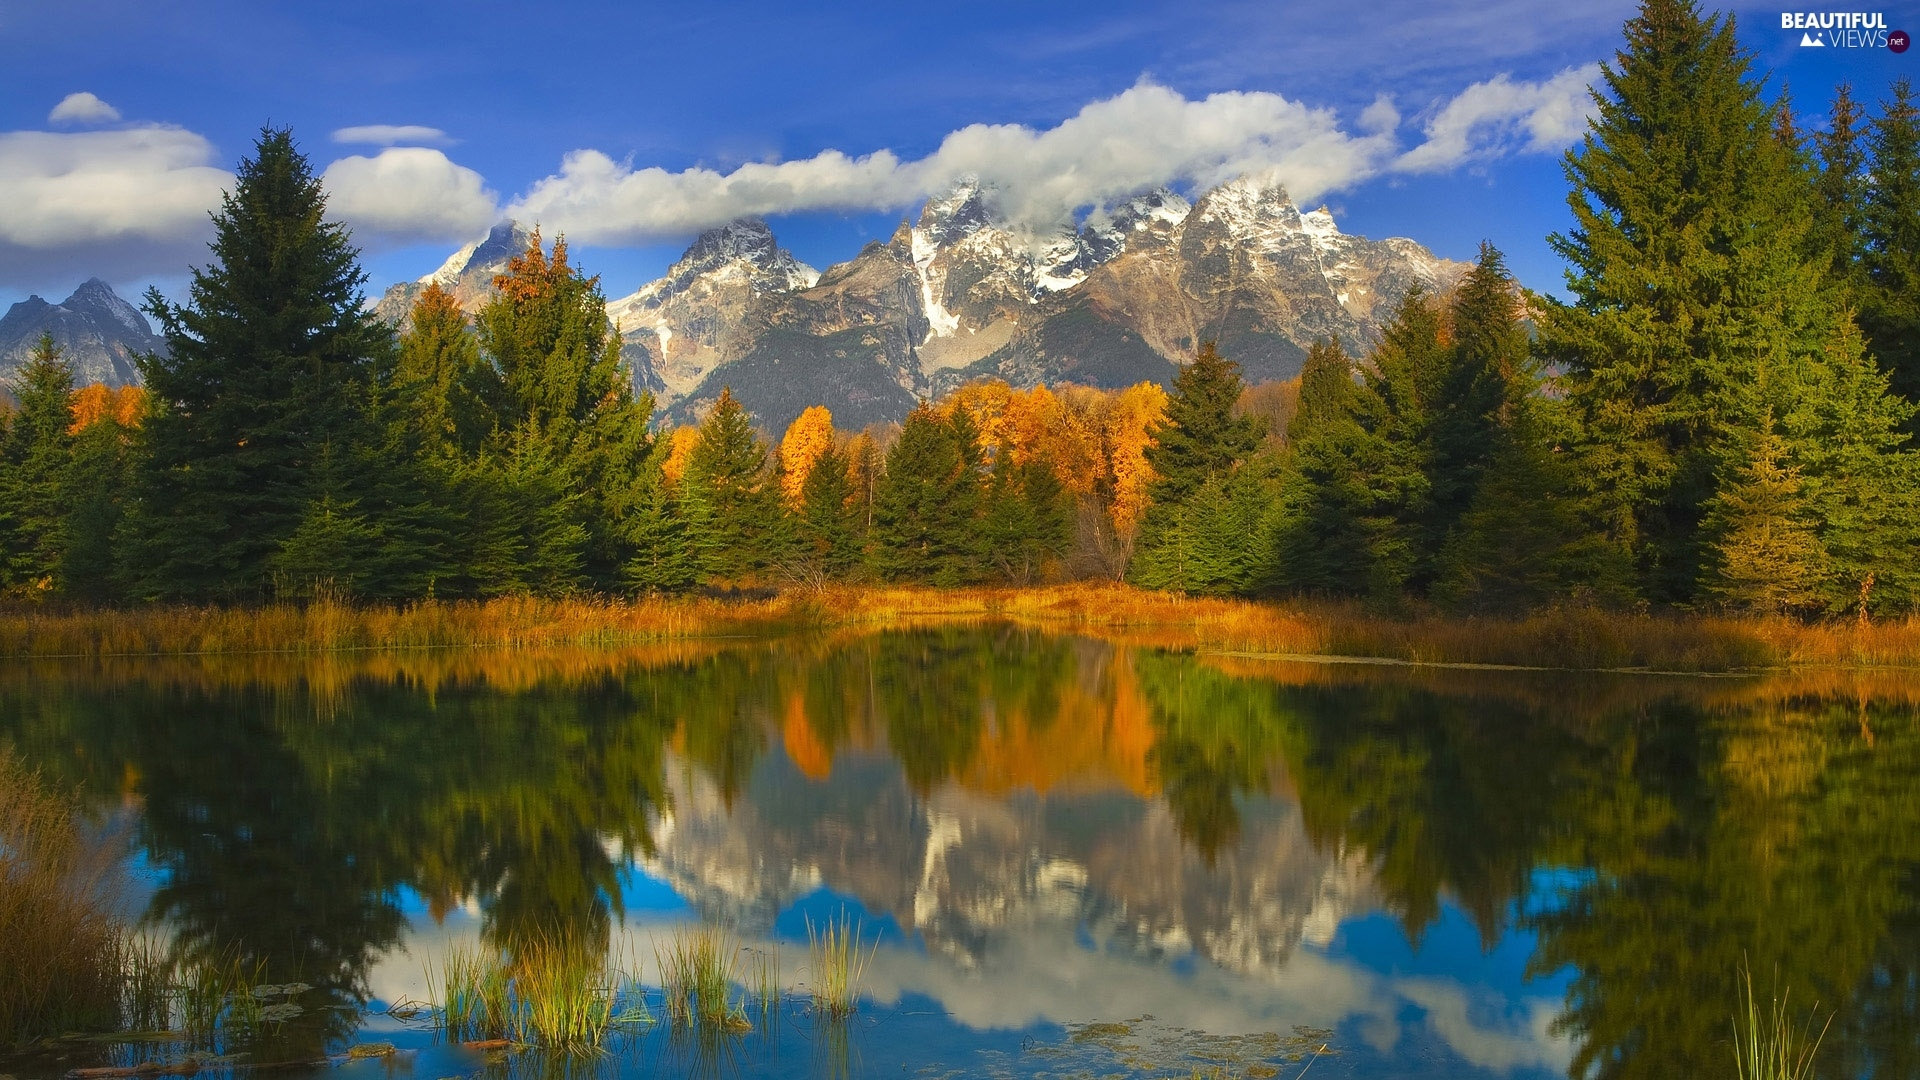 Autumn Mountains Backgrounds Throughout Backgrounds 3840x2160 Mountains Woods Autumn Lake Beautiful Views Wallpapers 3840x2160